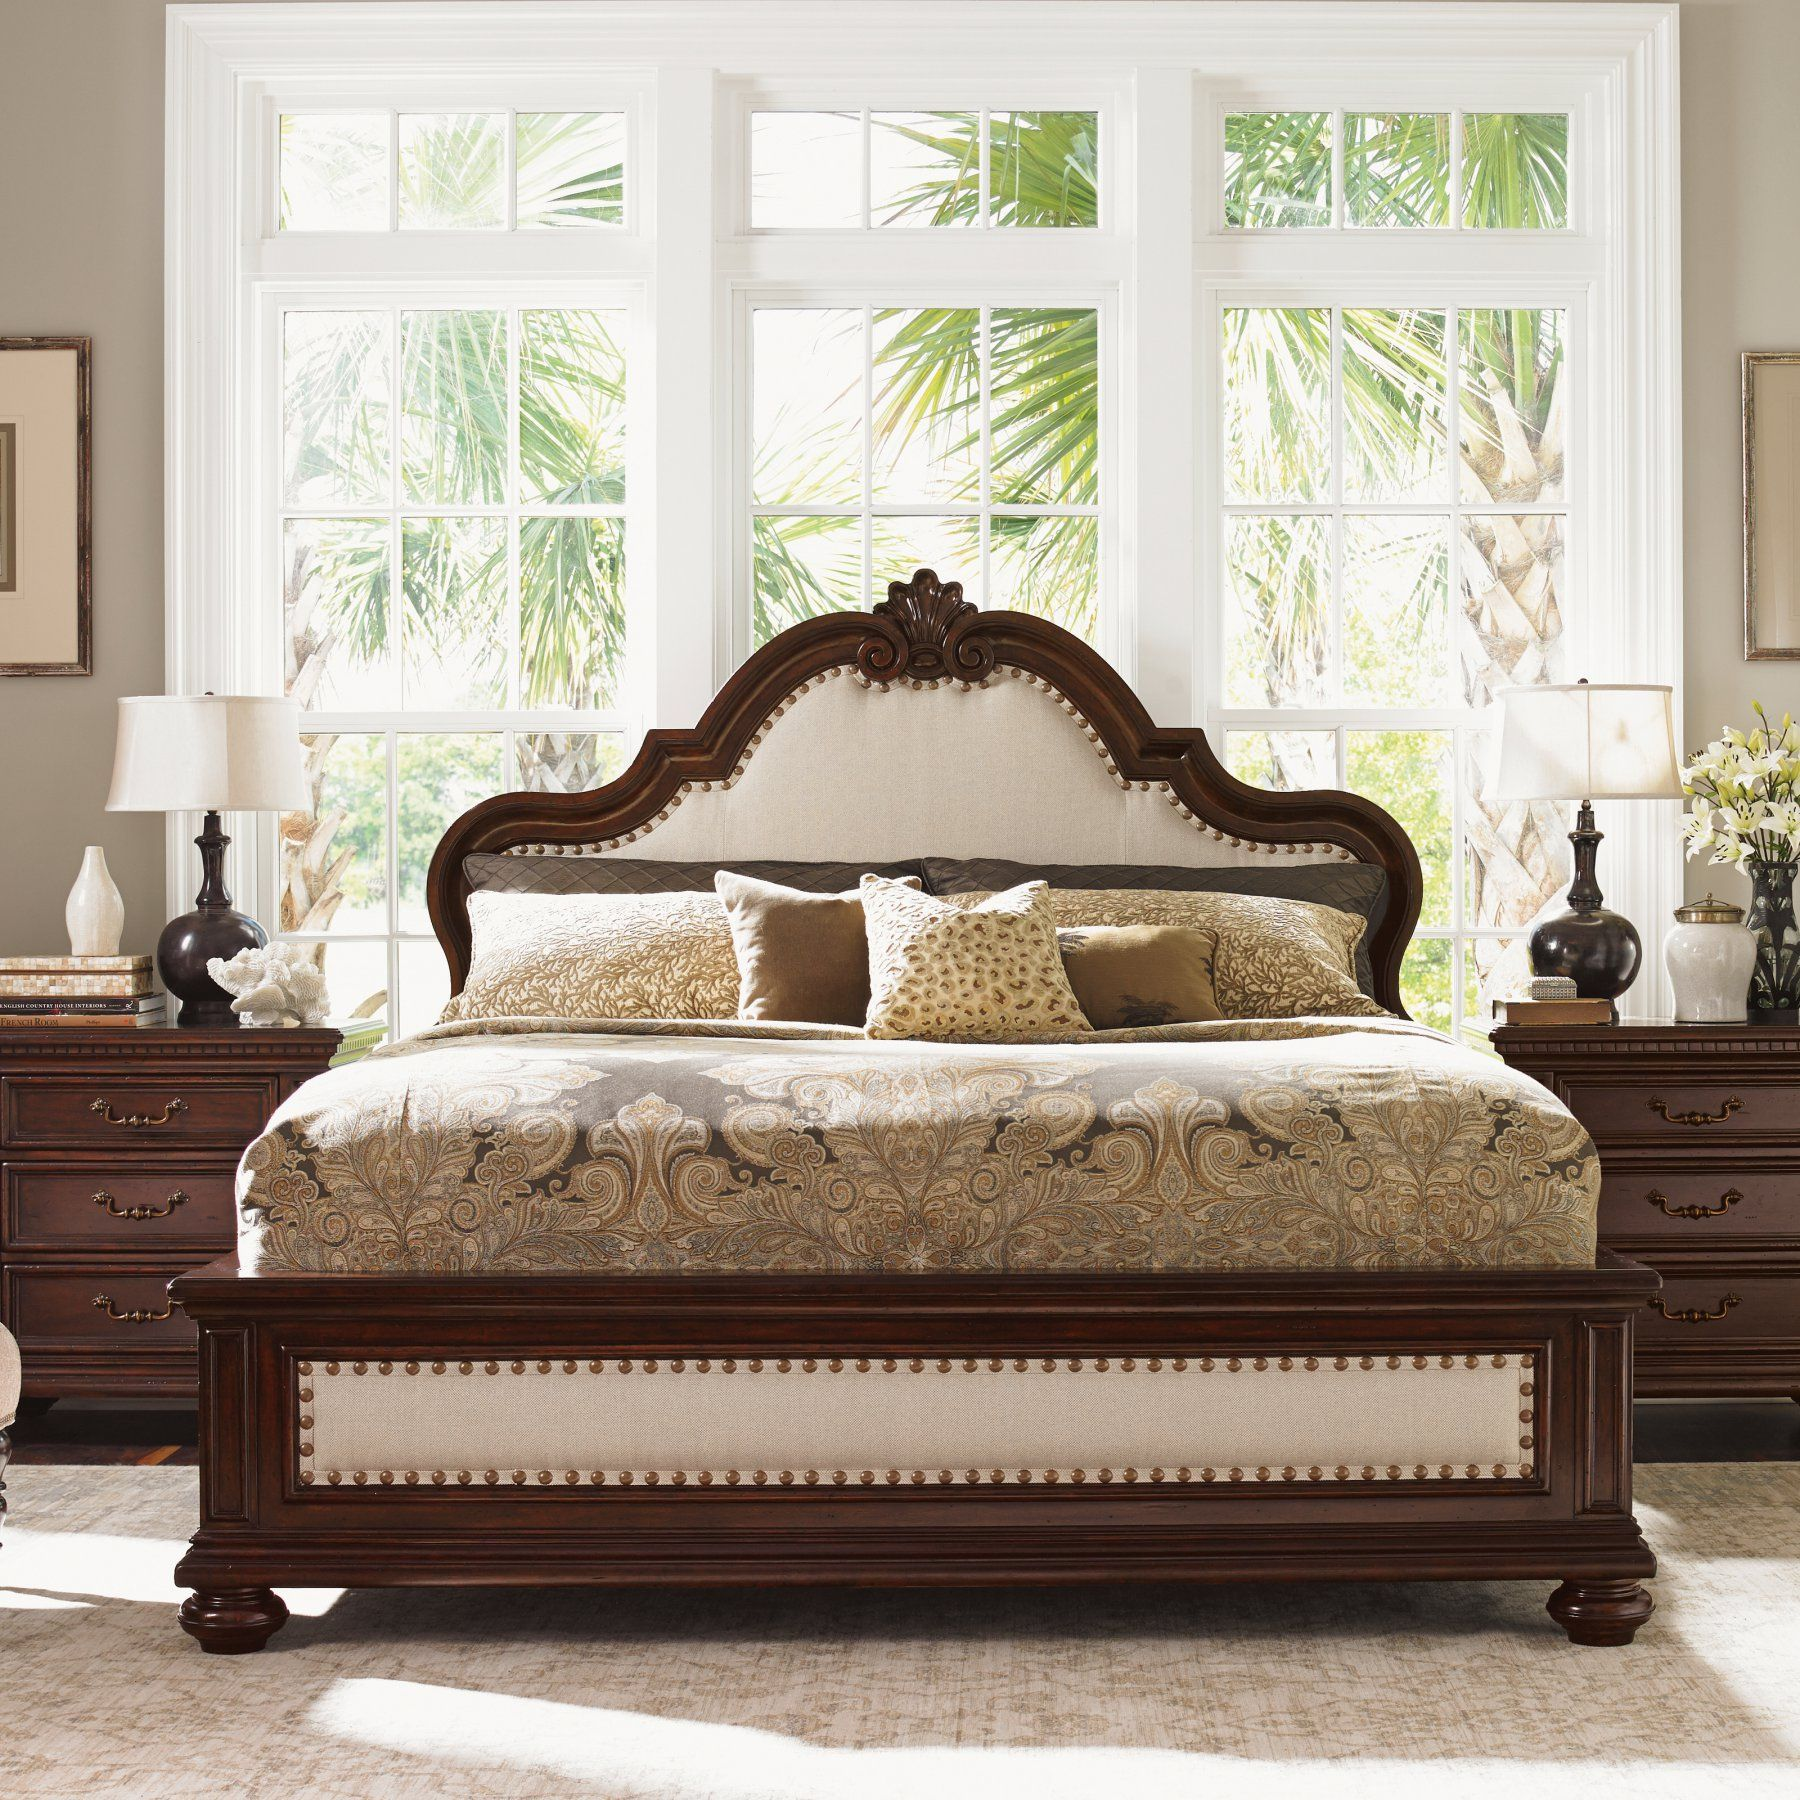 Inspiring Tommy Bahama Bedroom Furniture Ideas